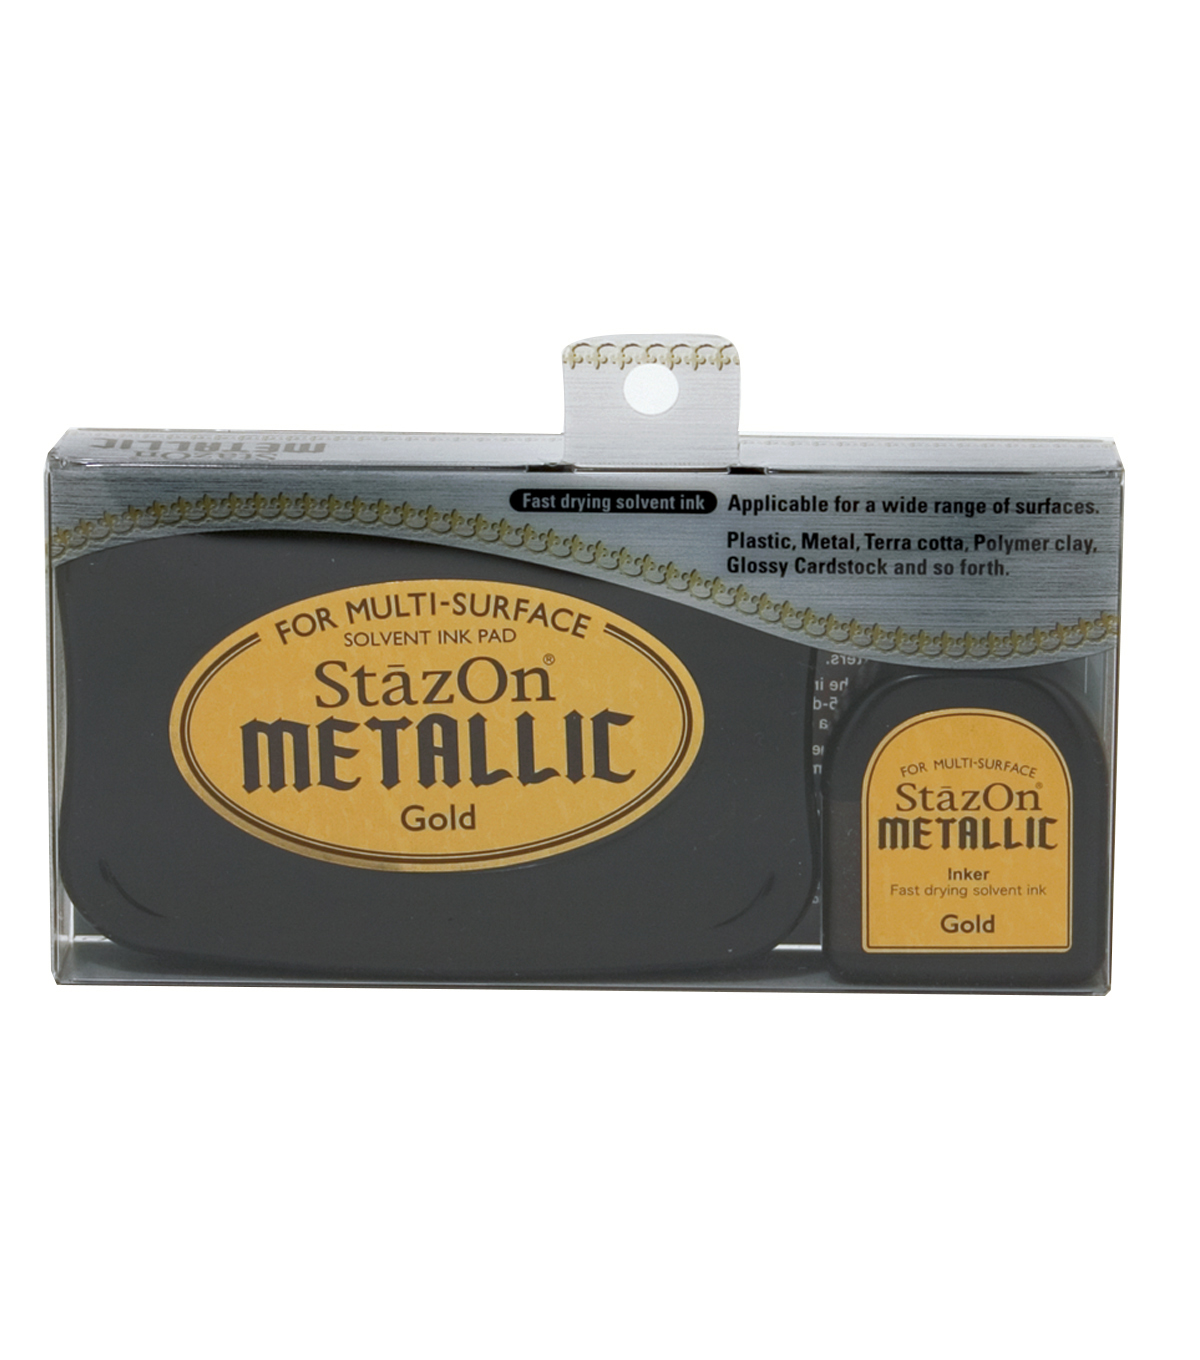 StazOn Metallic Solvent Ink Kit-Gold